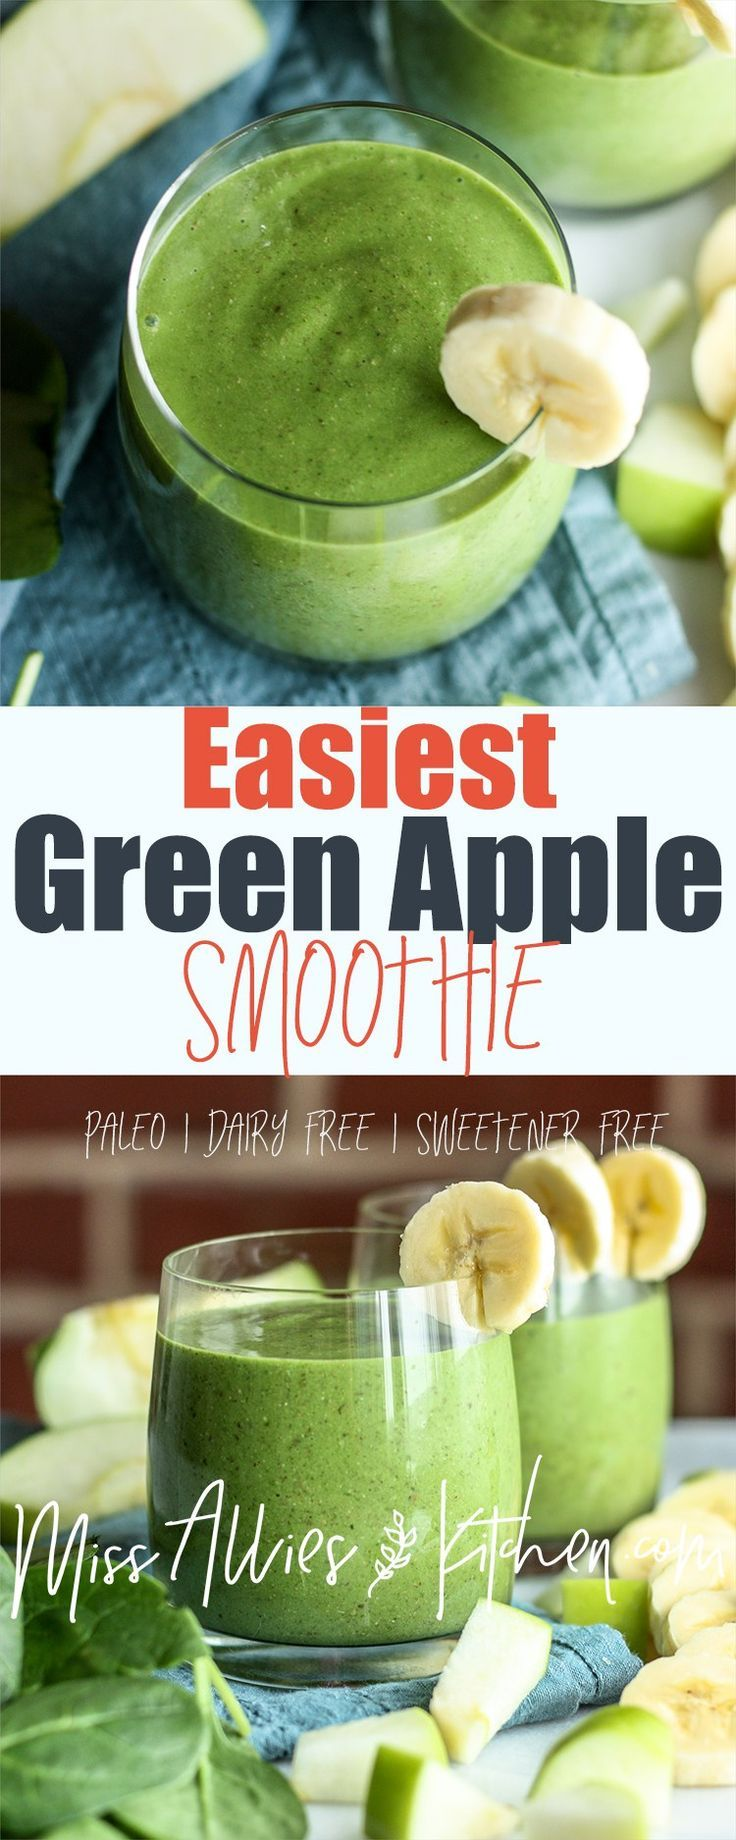 Easiest Green Apple Smoothie